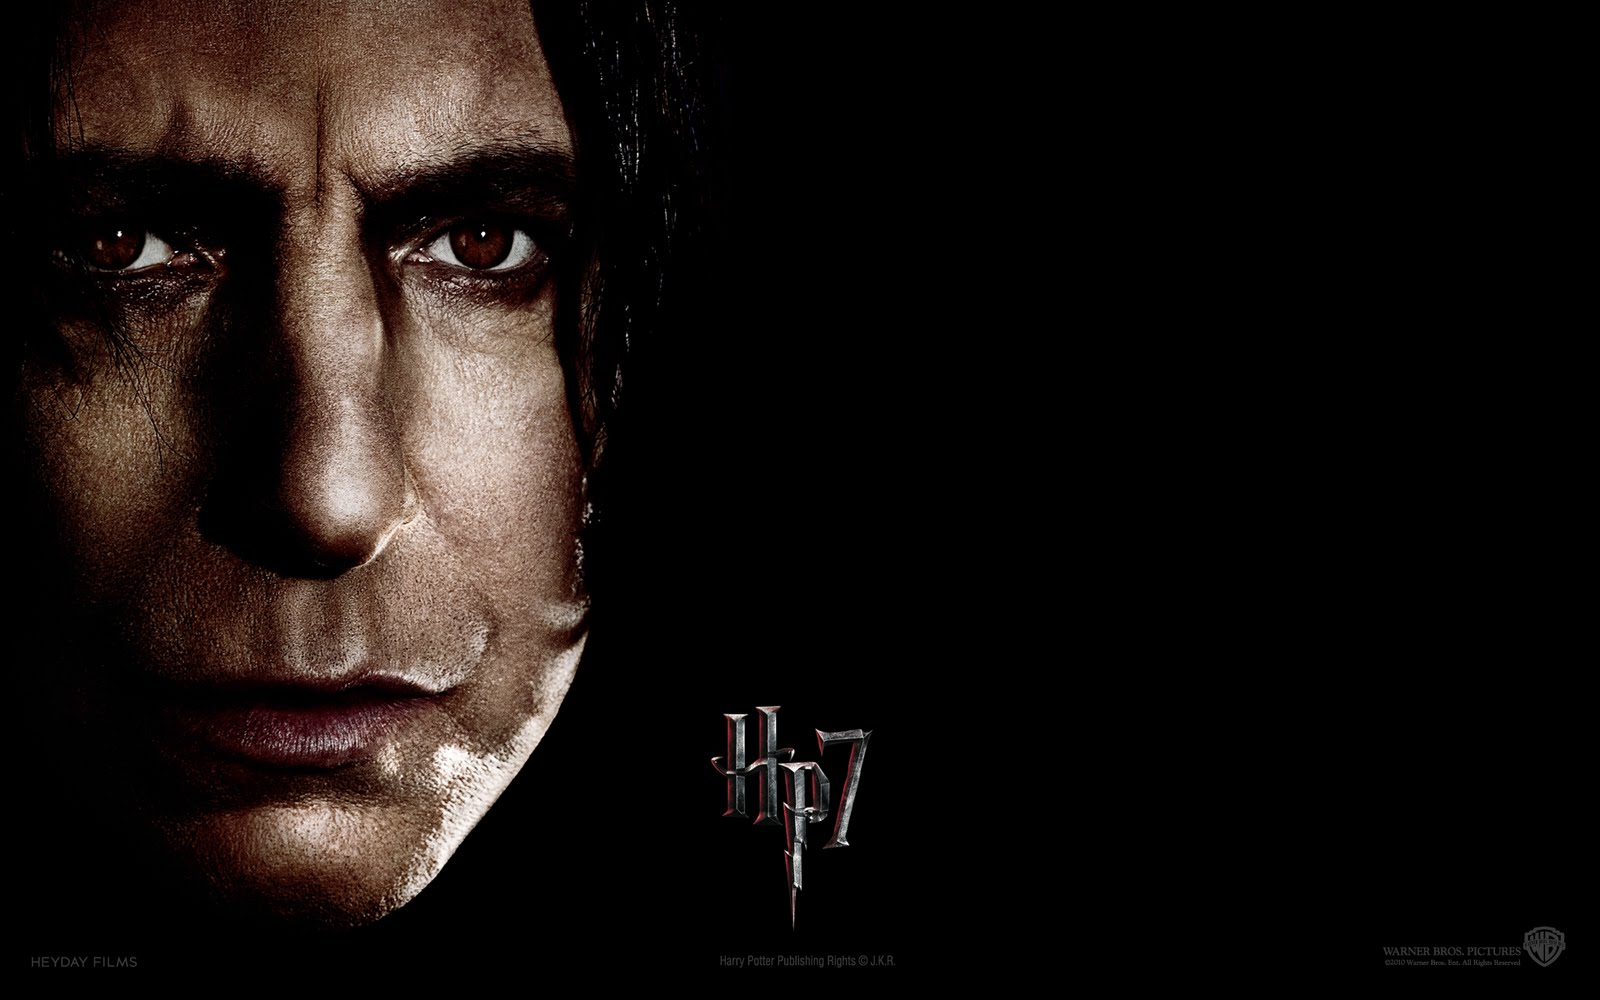 Amazing Wallpaper Harry Potter Deathly Hallows - alan-rickman-in-harry-potter-and-the-deathly-hallows-part-i-wallpaper-16_1920x1200_88251  Best Photo Reference_30975.jpg